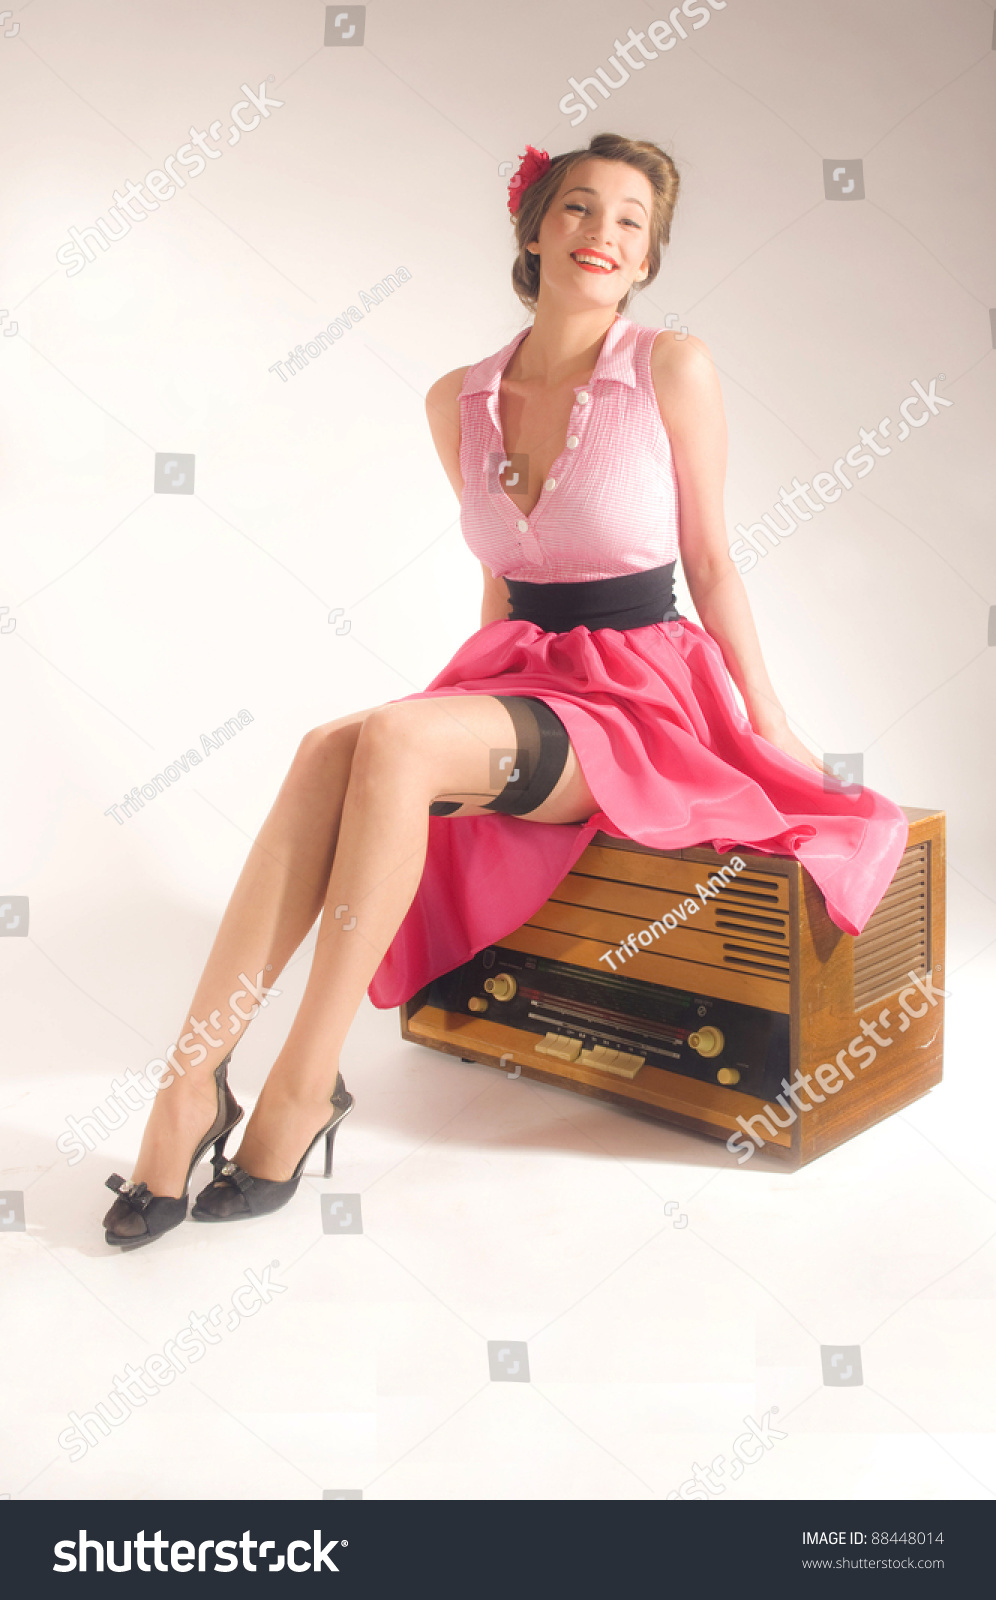 pin up girl listen retro radio stock photo 88448014 shutterstock. Black Bedroom Furniture Sets. Home Design Ideas